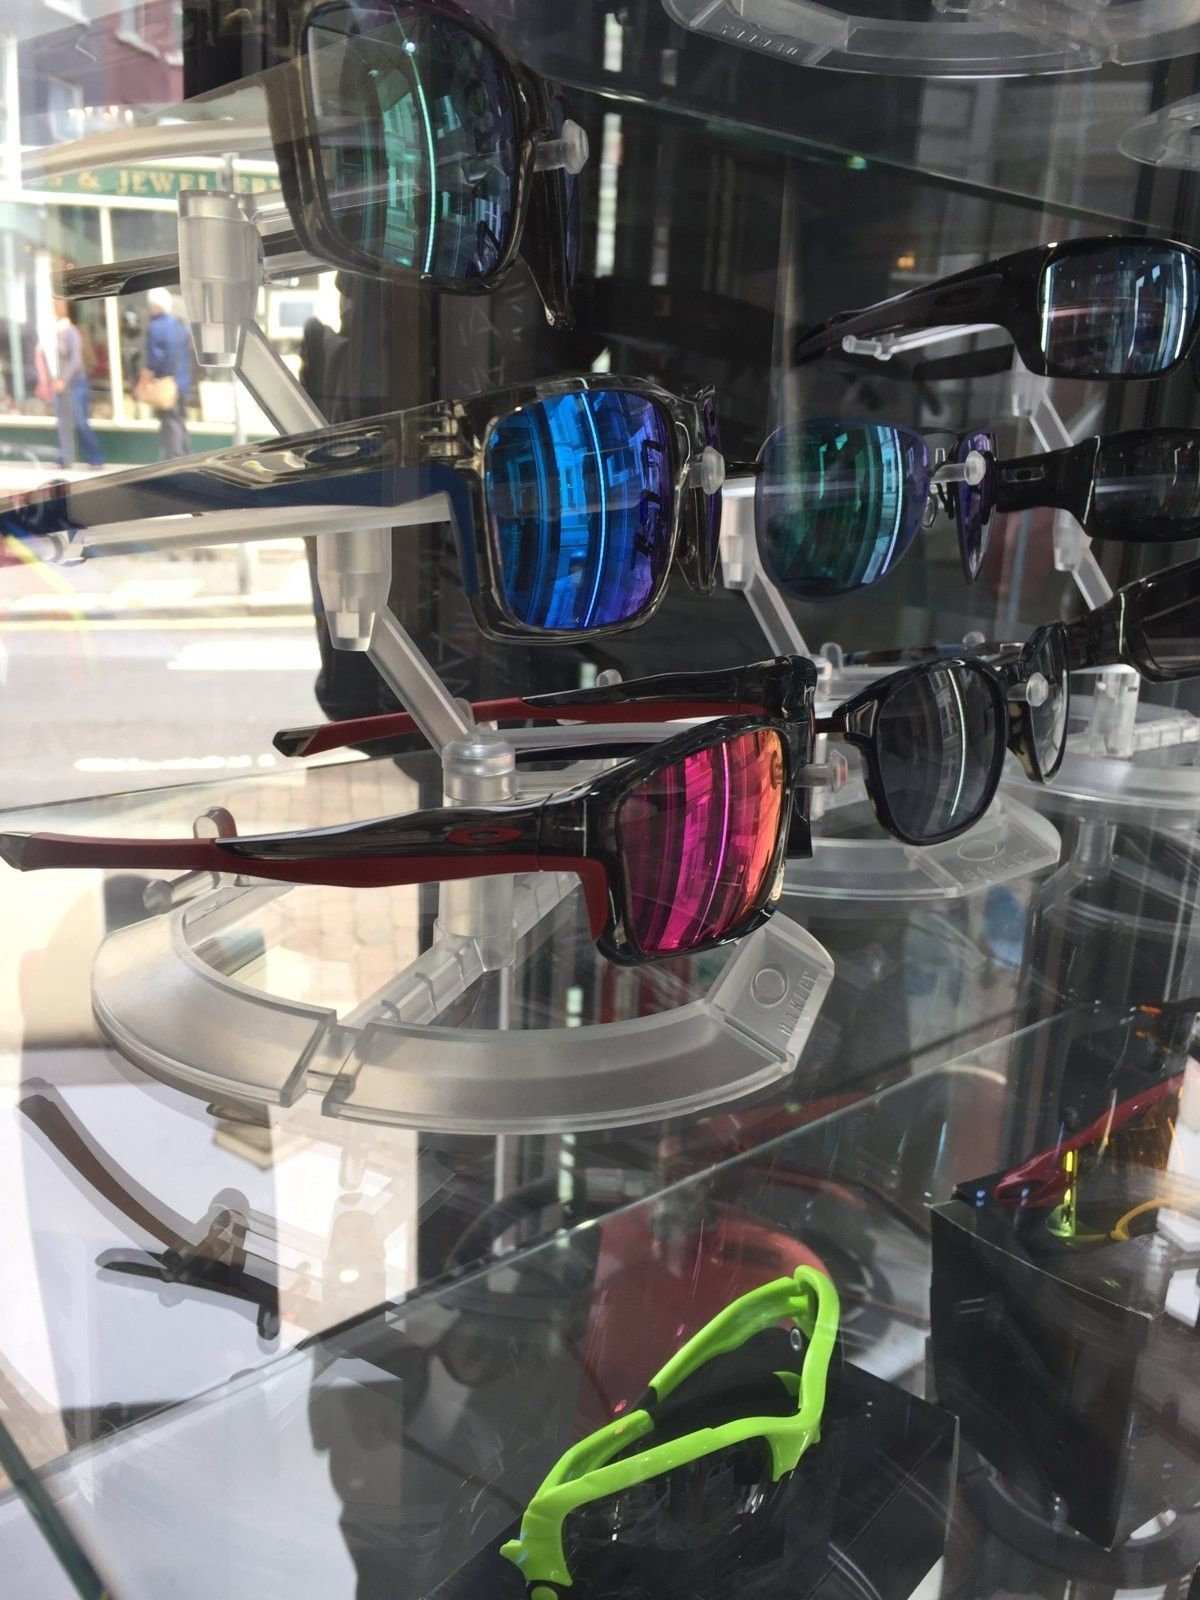 What model are these. - image.jpeg